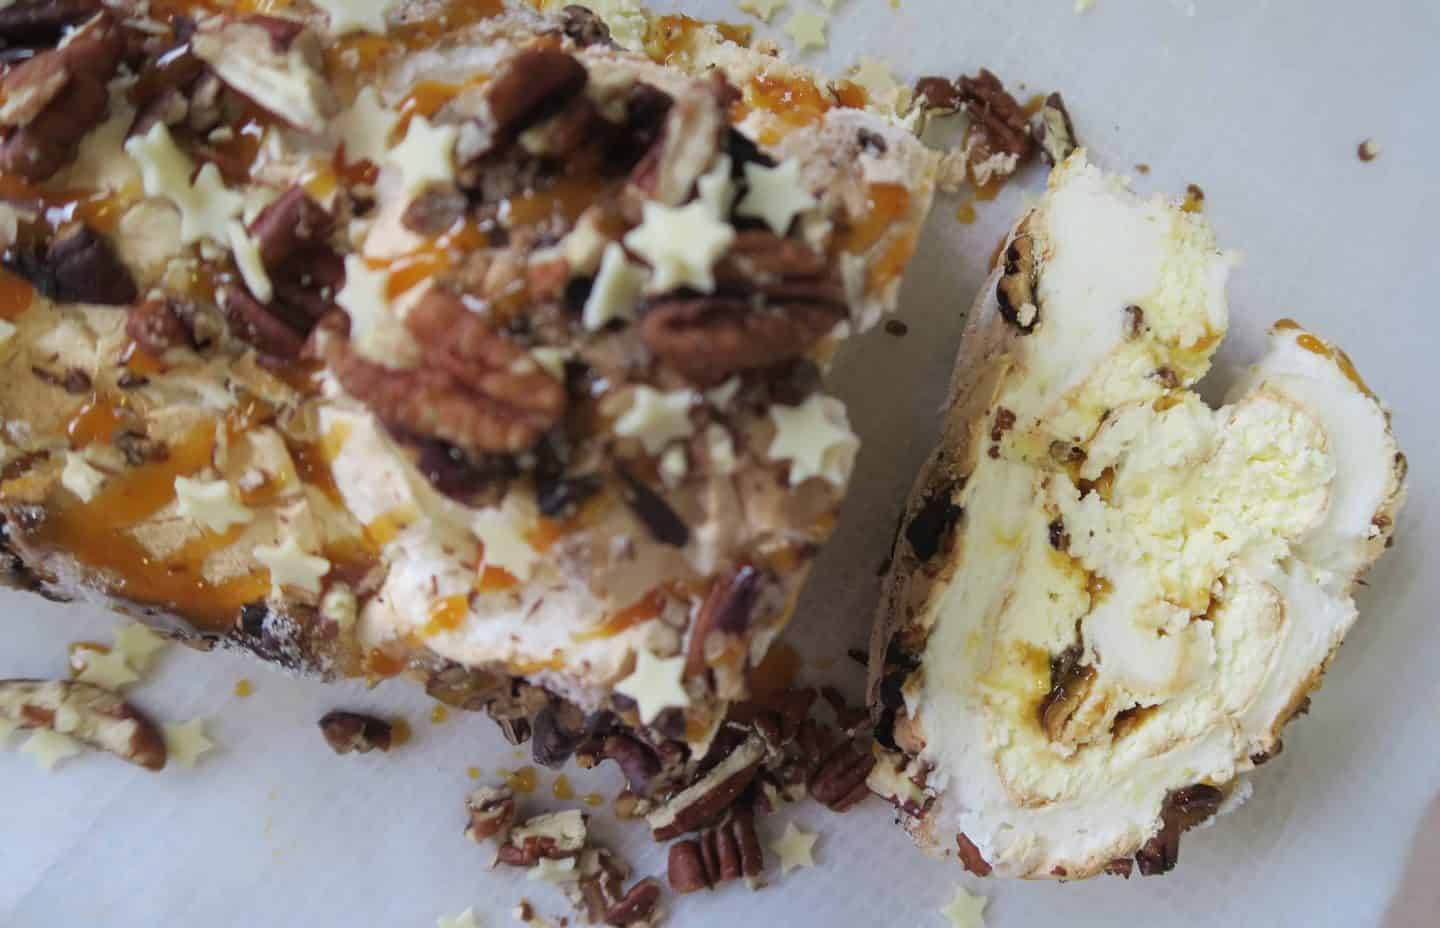 GLUTEN FREE TOFFEE AND PECAN ROULADE